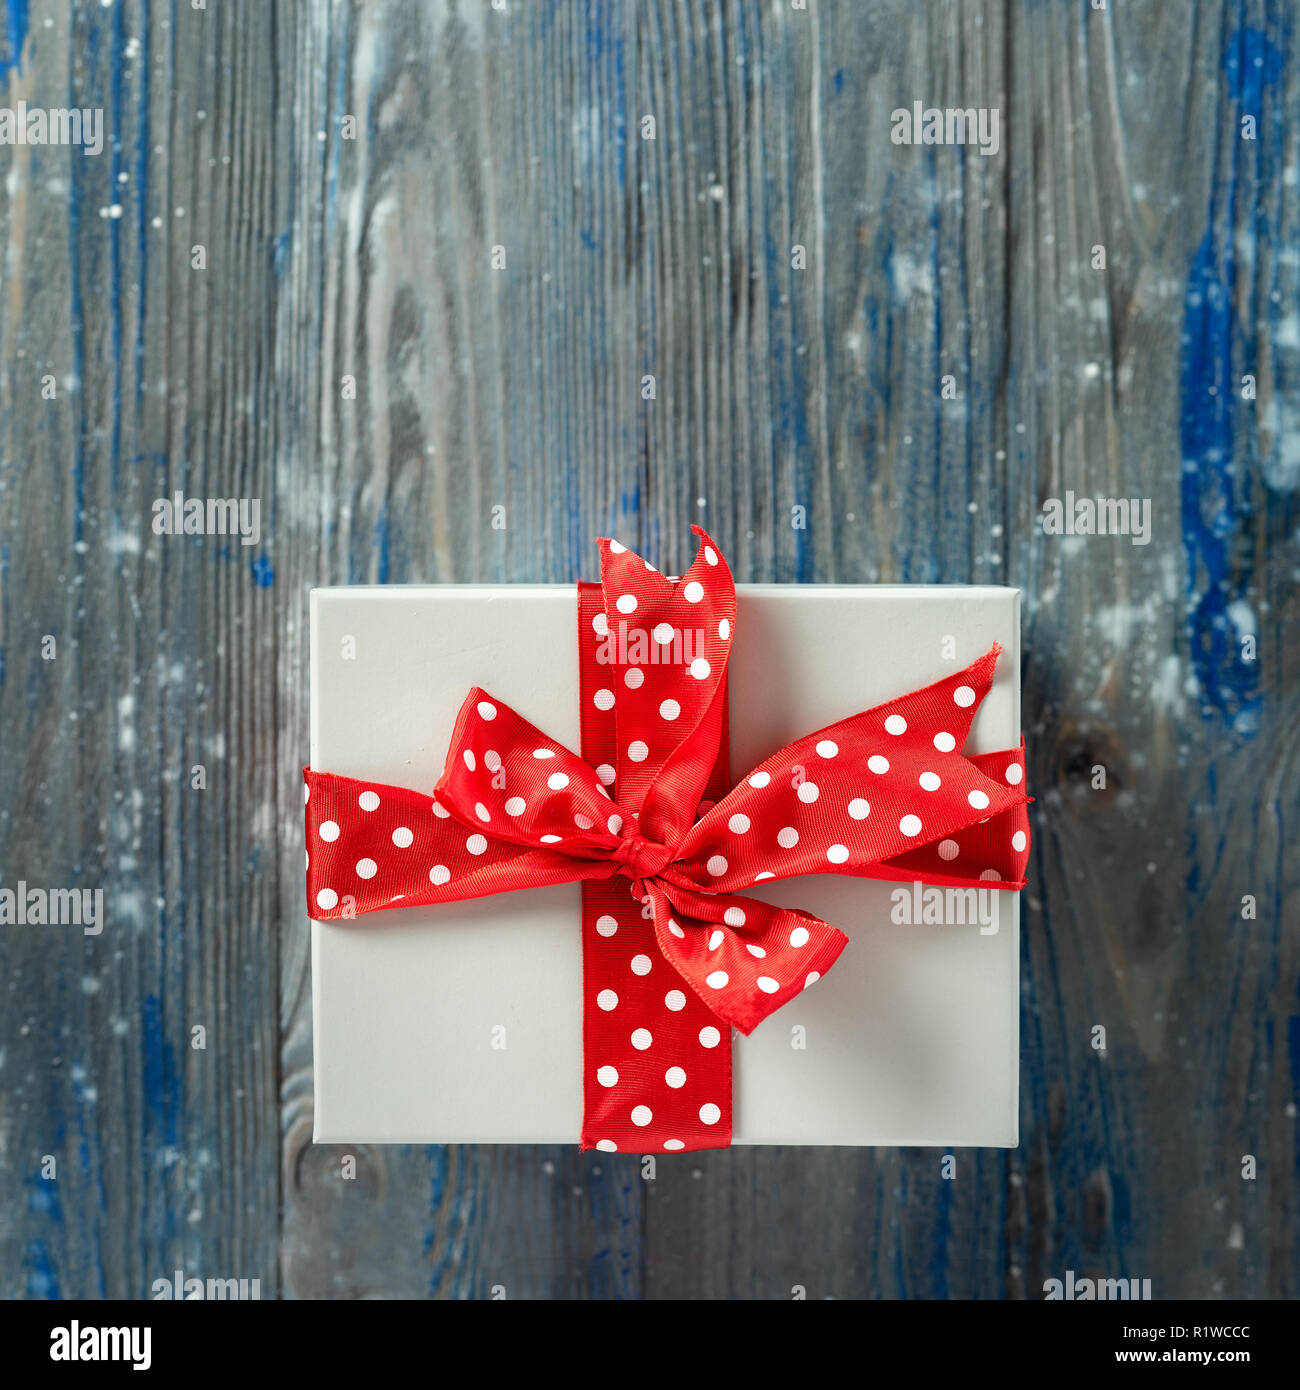 Top view of Christmas gift with big red bow - Stock Image